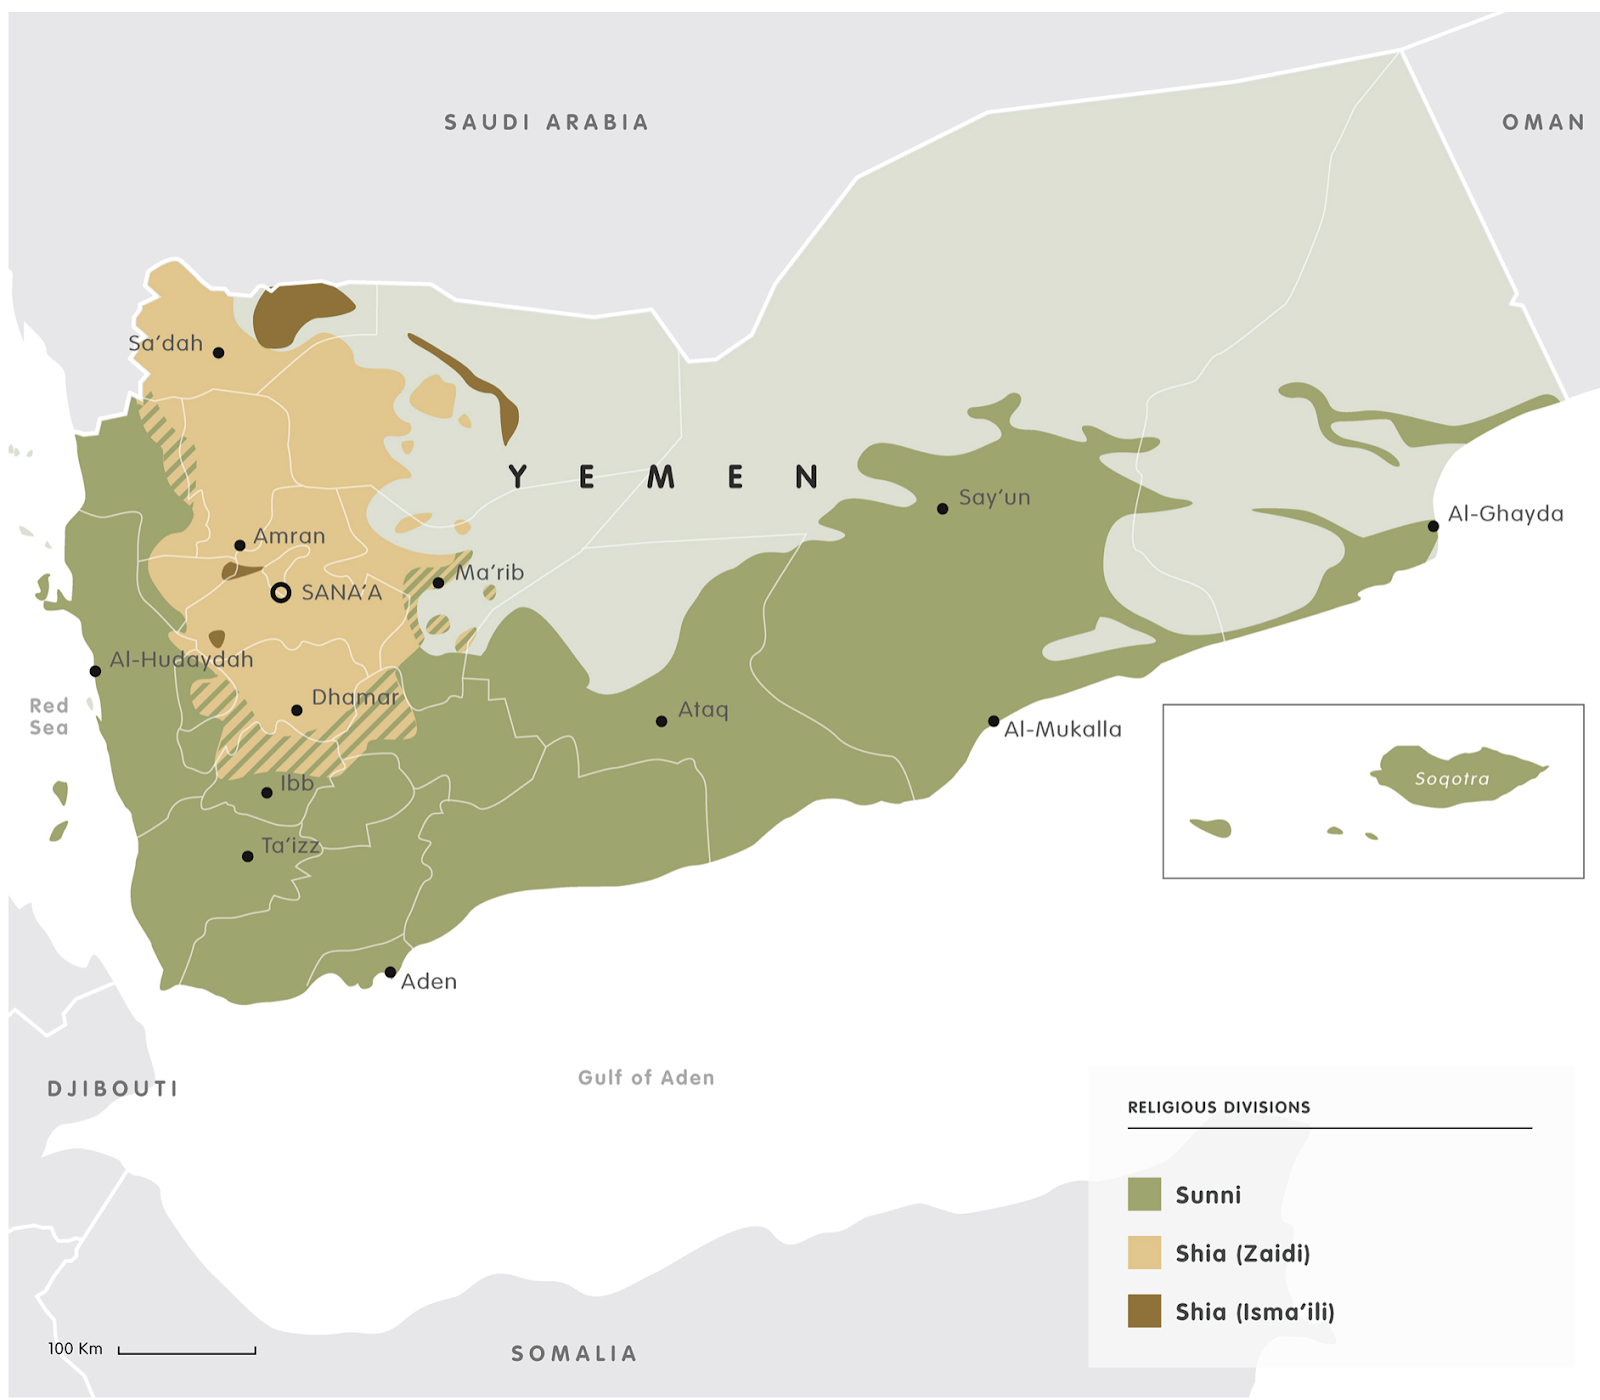 as you can see sunnis form the majority of the population and are located along the cost of the nation zaidi shiites predominate in the northern highlands